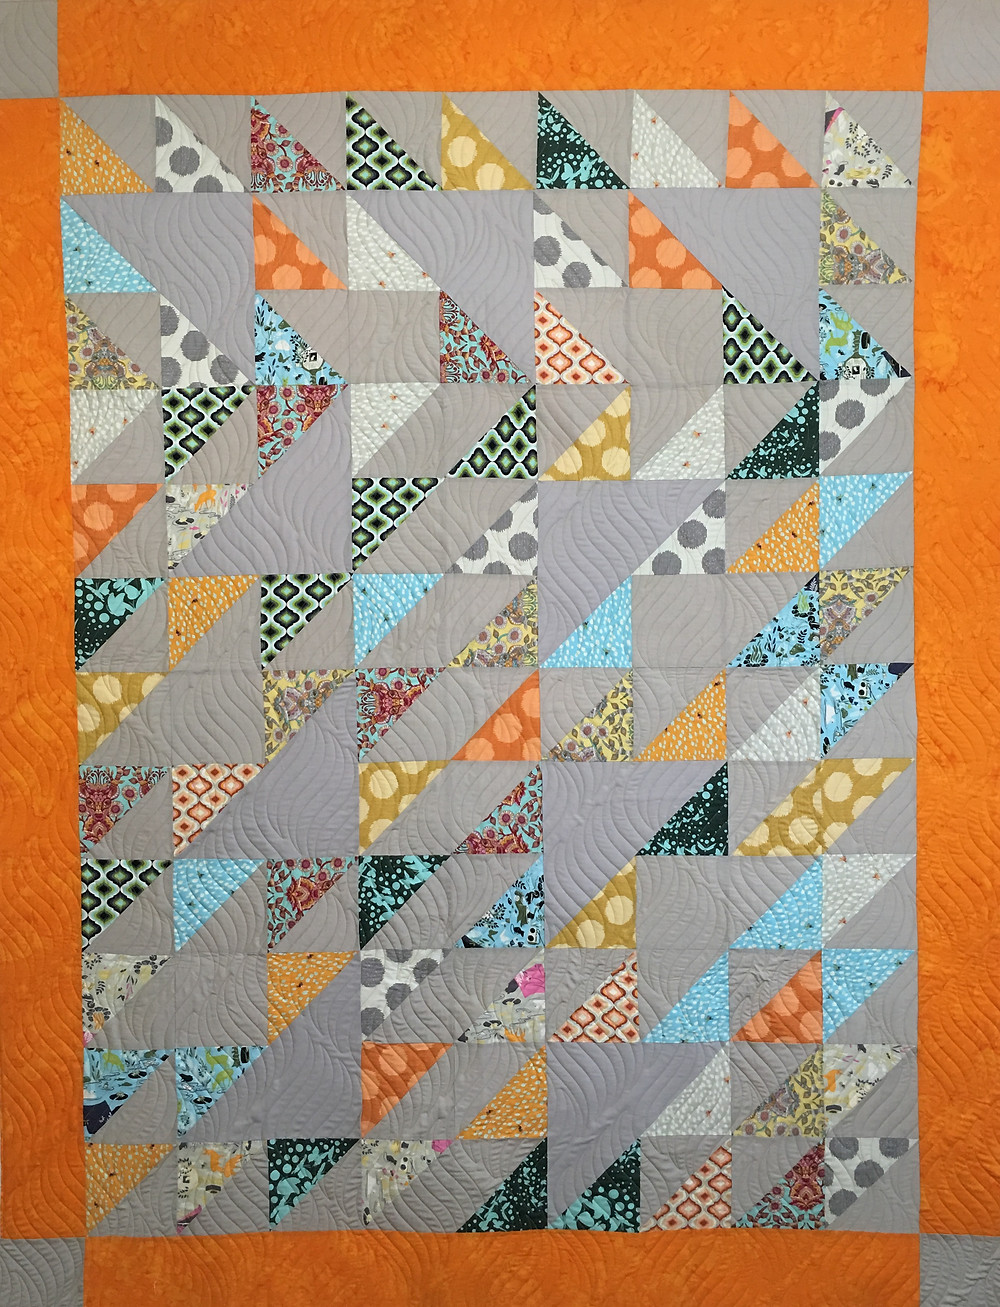 Sue Bliss Quilt is done in gray and orange prints